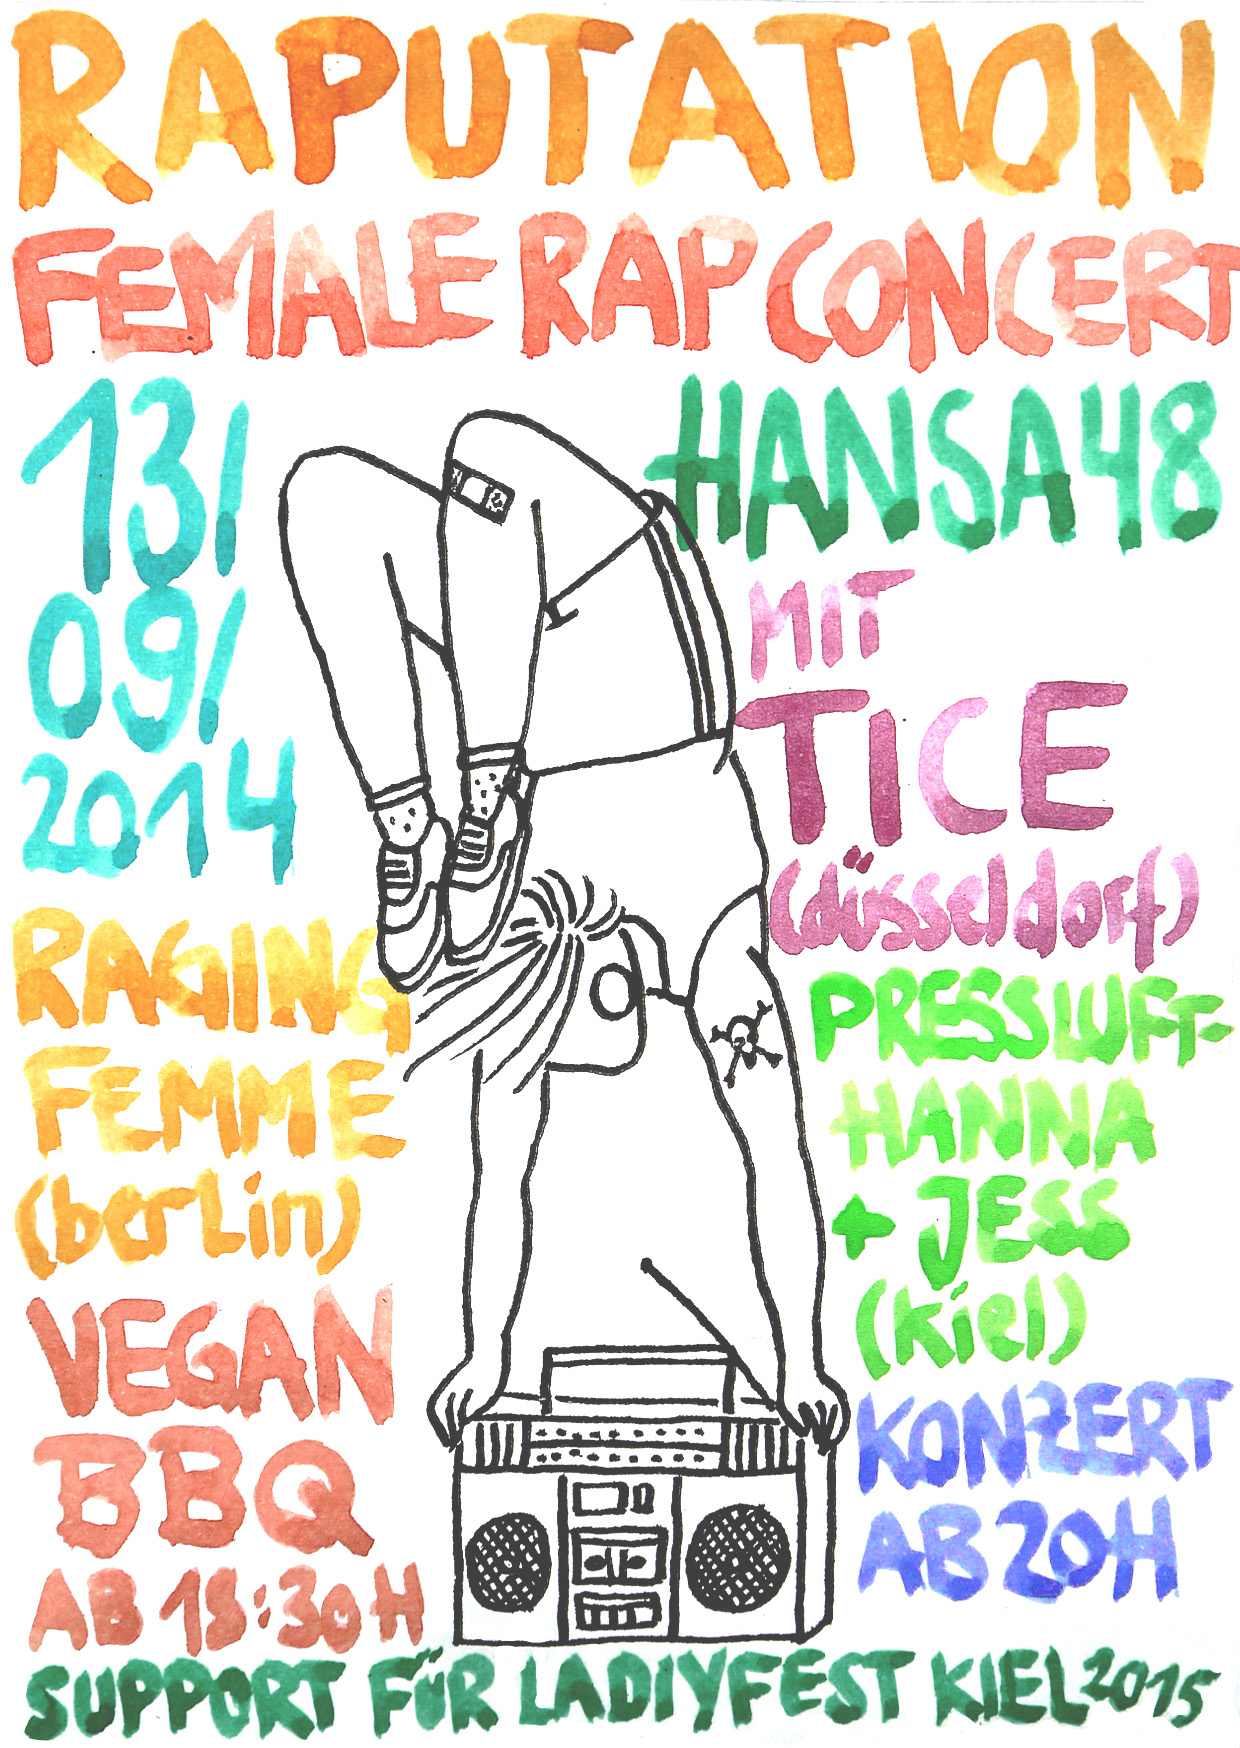 female rap concert am 13/09.